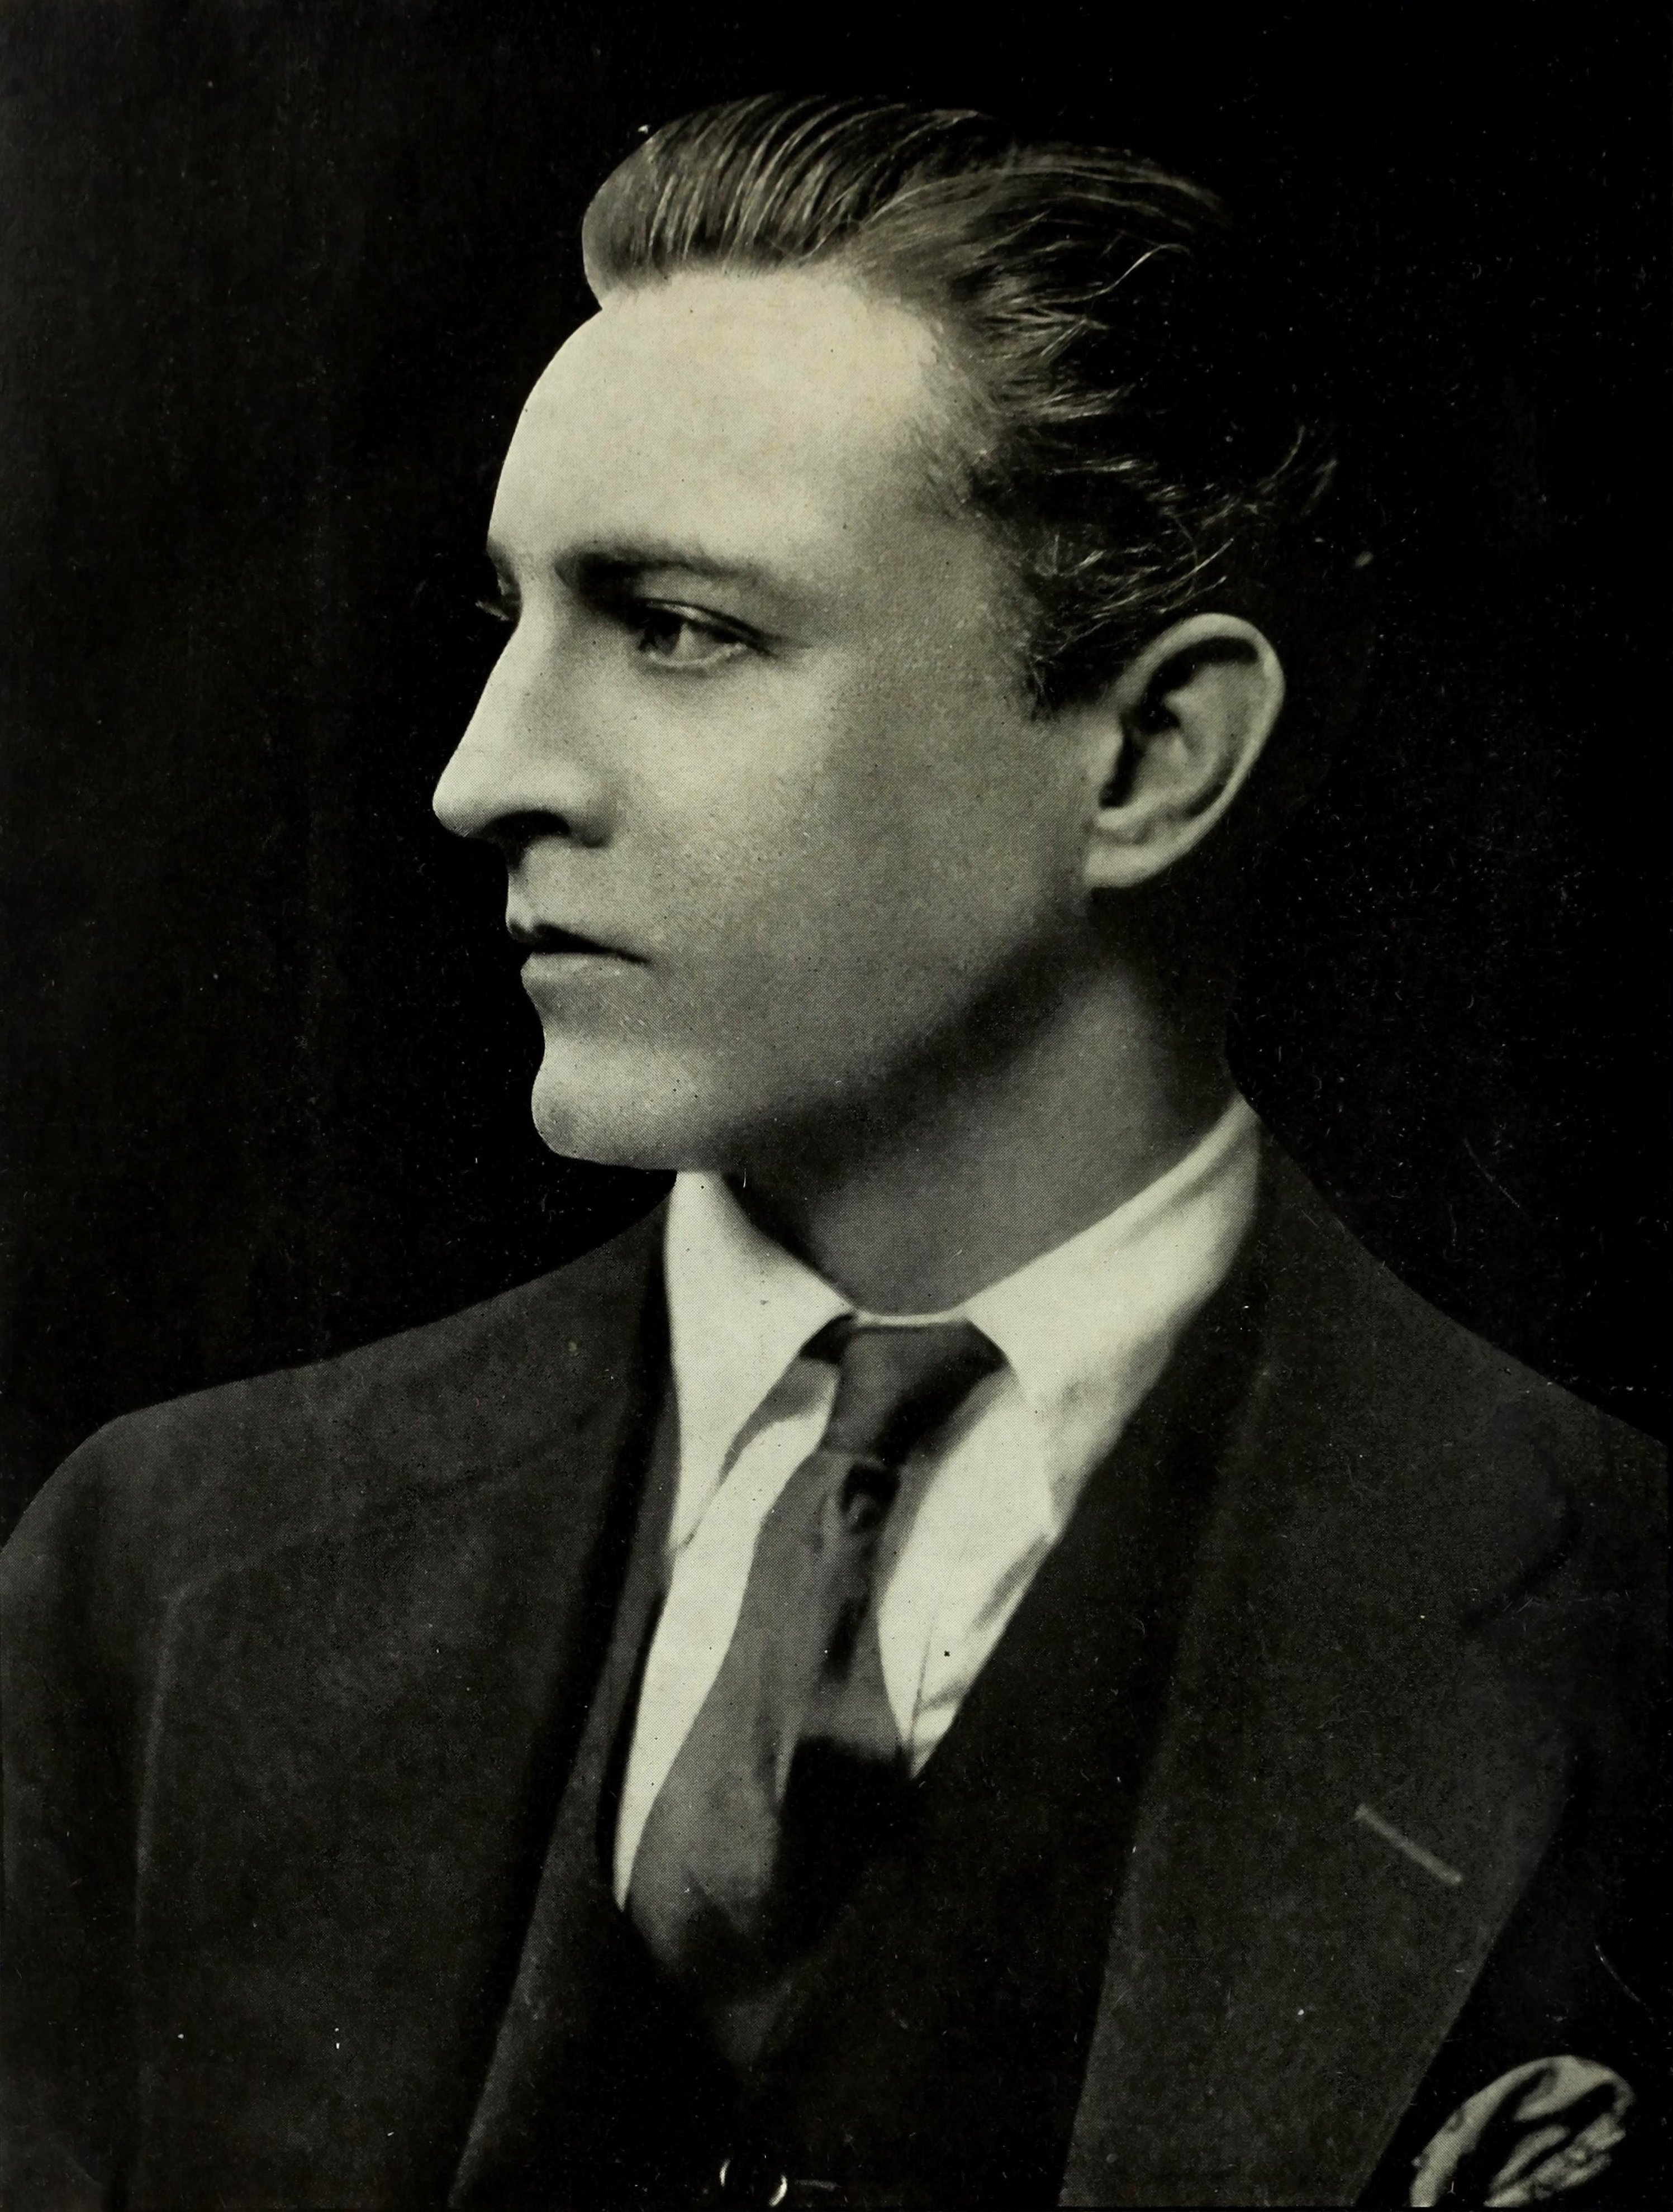 Portrait of John Barrymore 20 Things You Might Not Have Realised About Drew Barrymore